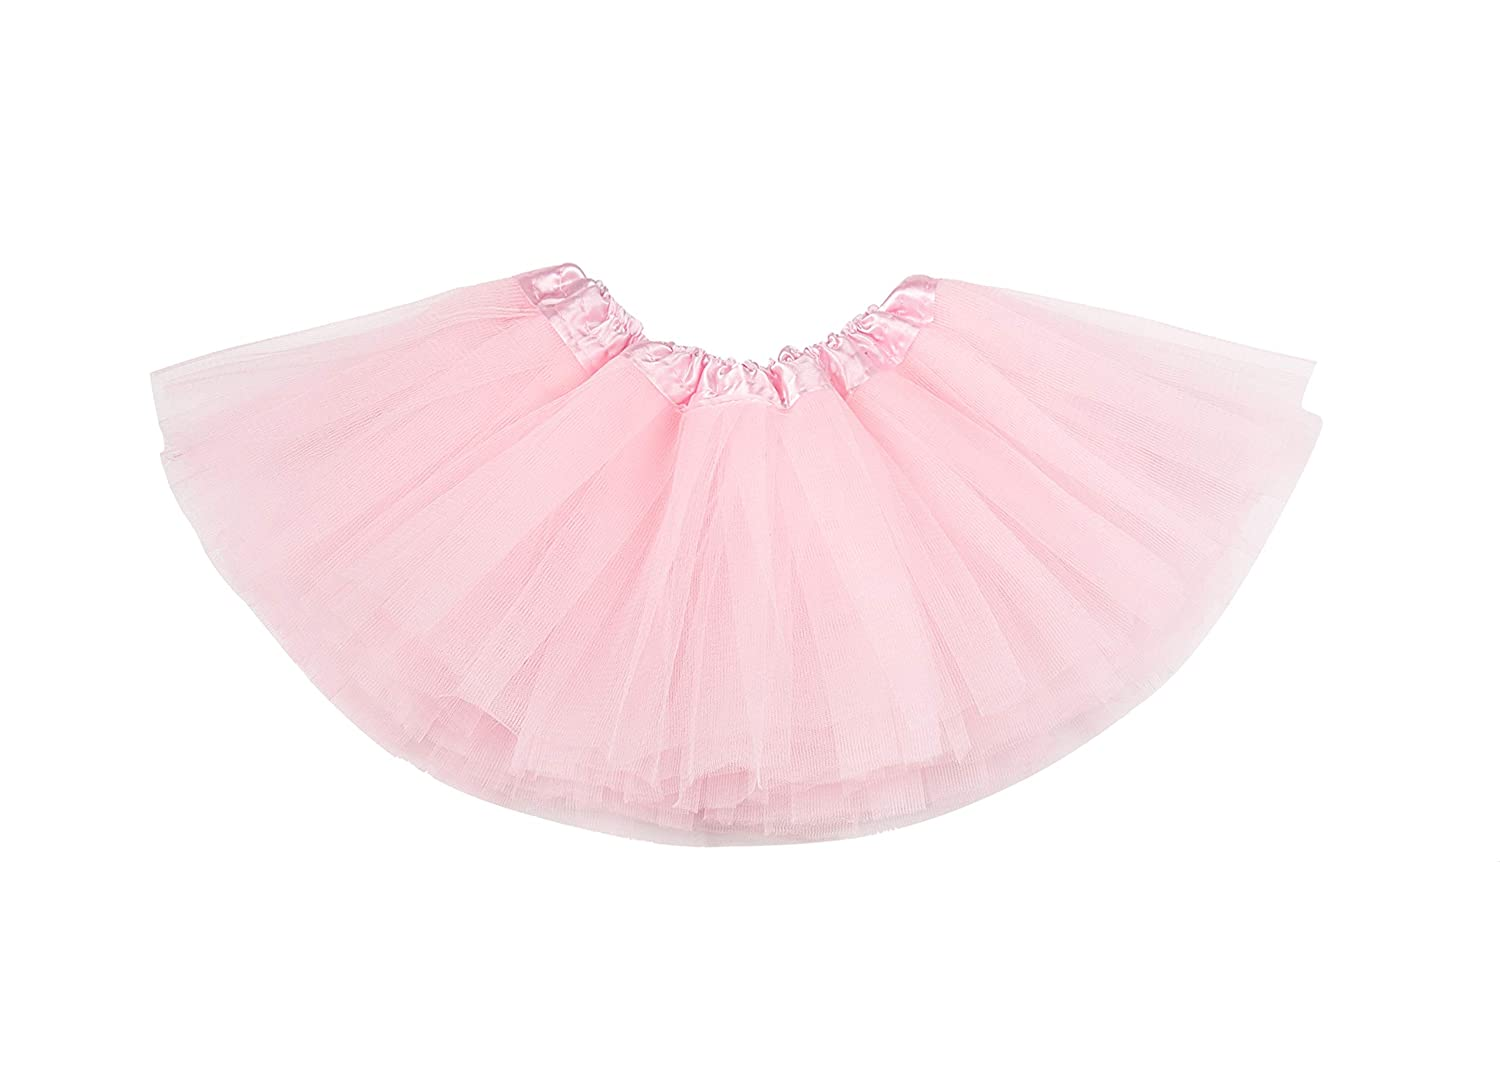 belababy Baby Tutu Skirt 5 Layers Tulle Dress Up for Baby Girls /&Toddlers Infant Tutus